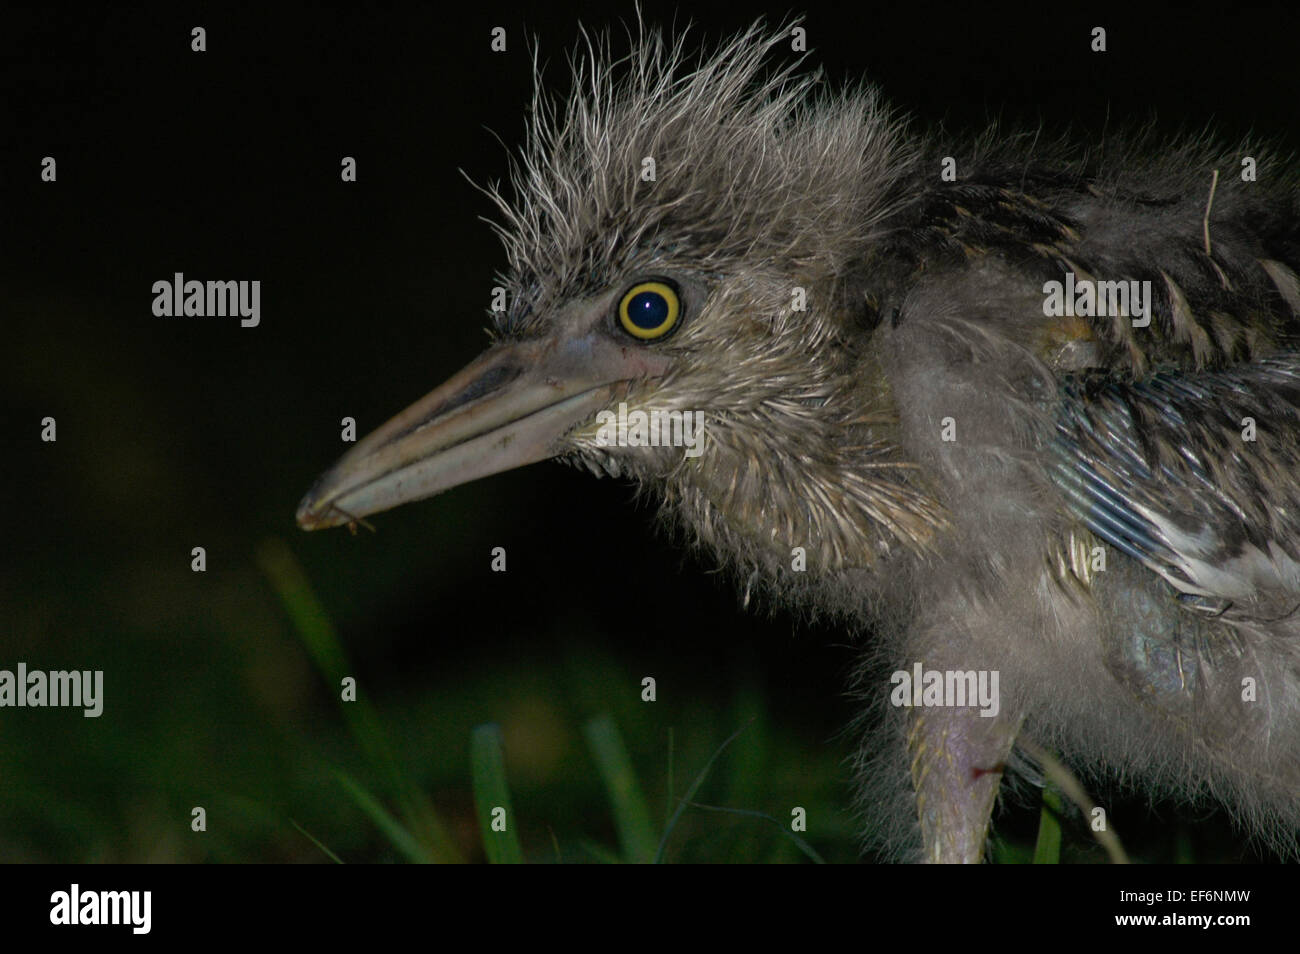 Black-crowned night heron (Nycticorax nycticorax), juvenile, spotted at Ancol Bird Park in Jakarta coastal area. Ancol Dreamland, Jakarta, Indonesia. Stock Photo